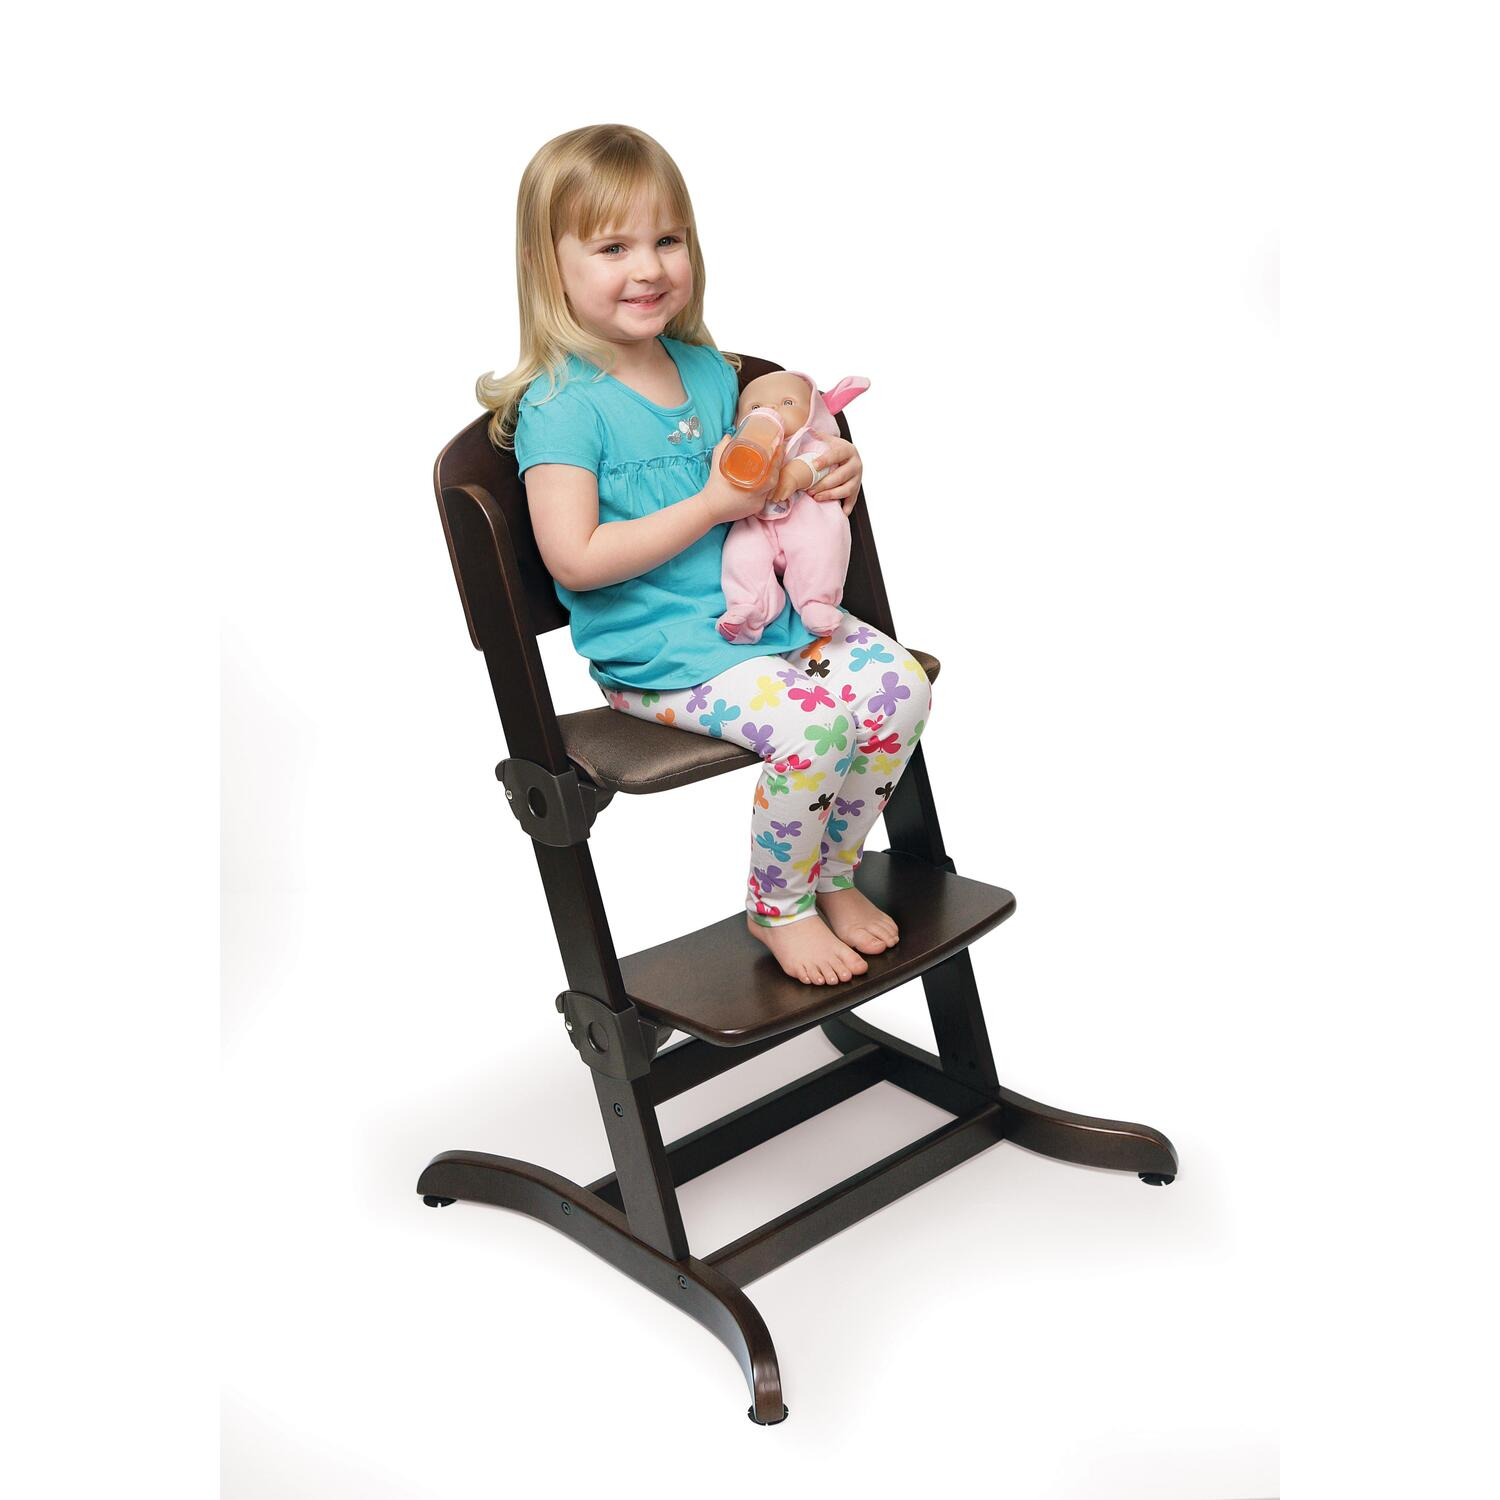 badger basket evolve high chair retro metal yard chairs wood with tray from 56 99 to 168